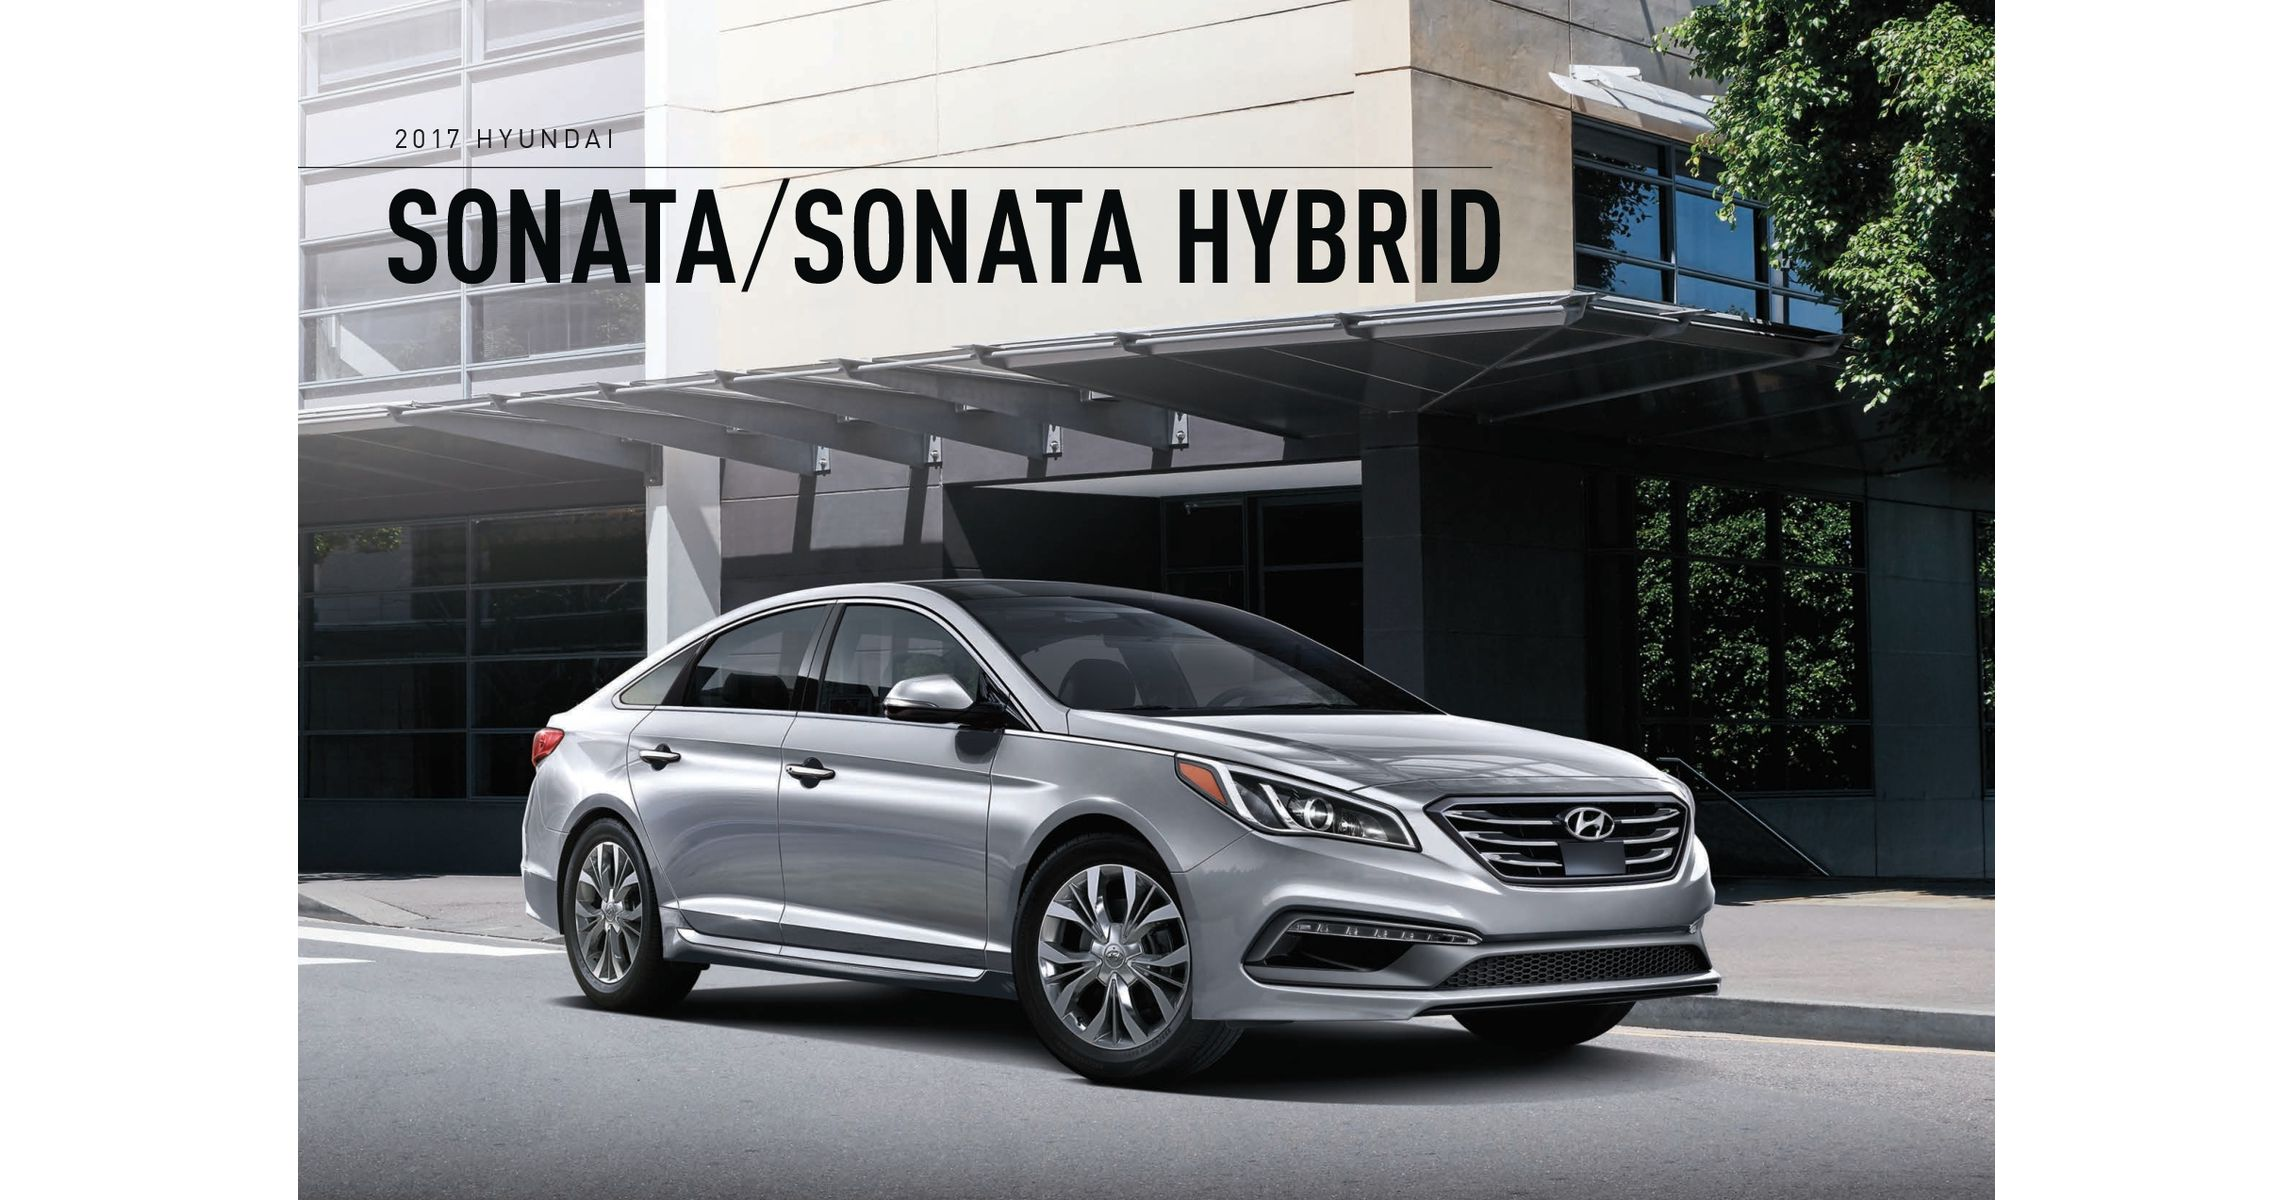 choice a motor concept sonata hyundai be baked rouge compelling would from fil with the show le geneva flair